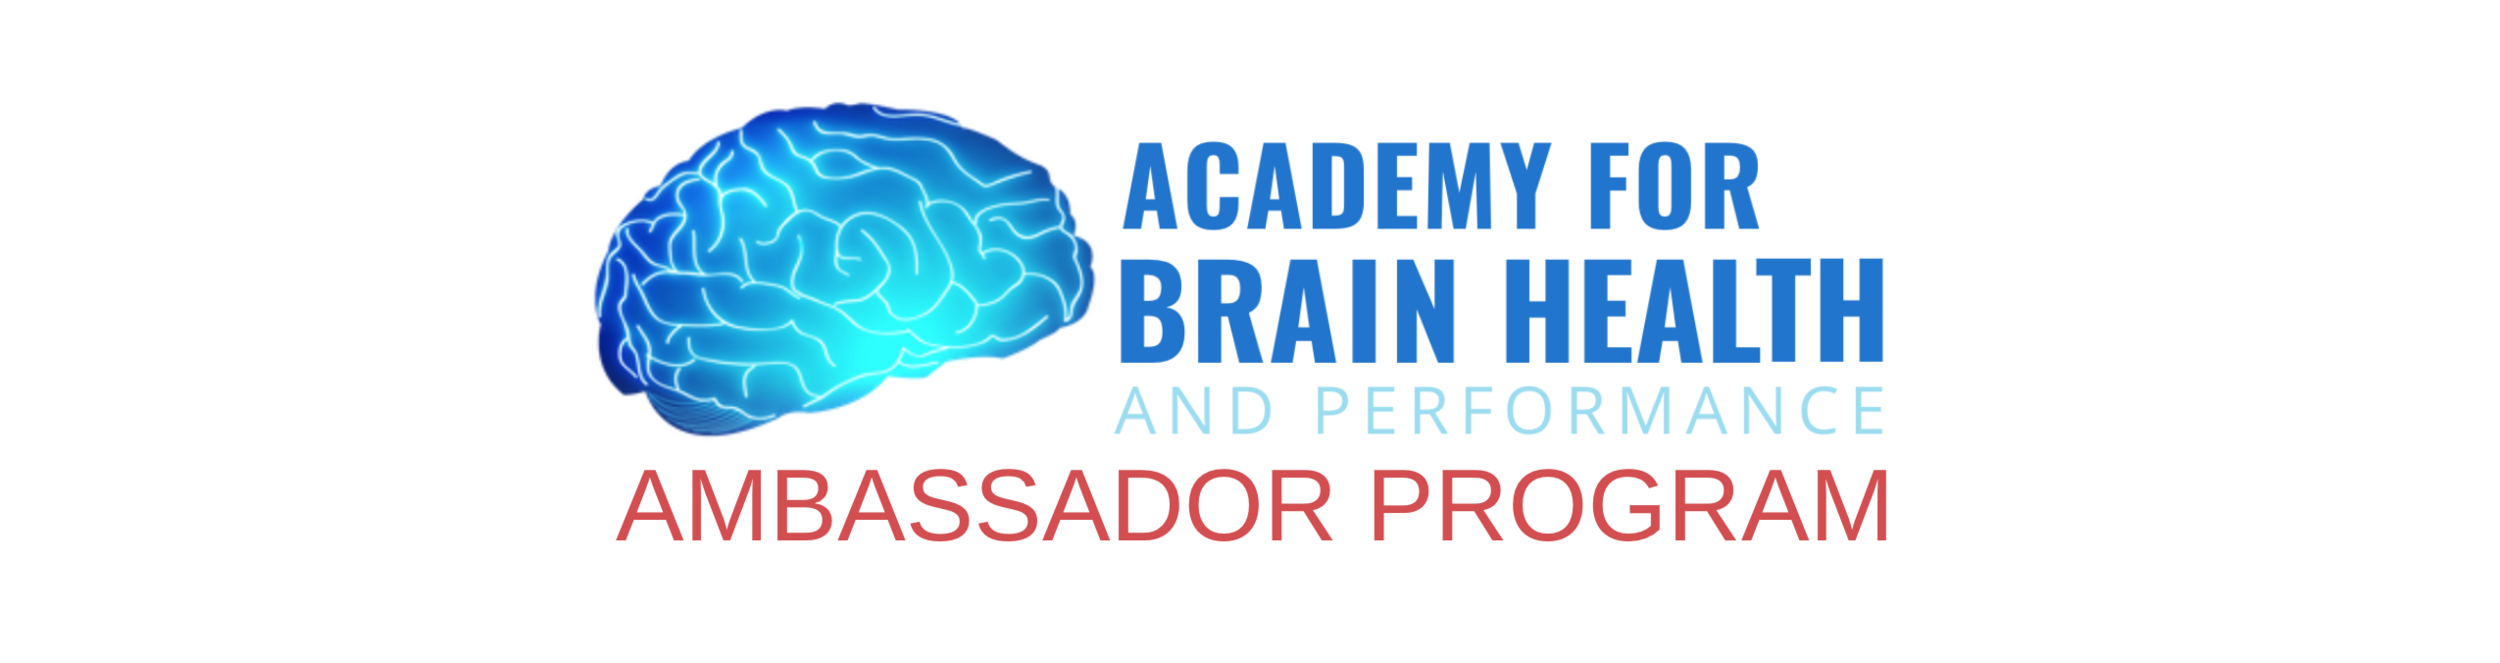 BRAIN HEALTH AMBASSADOR PROGRAM